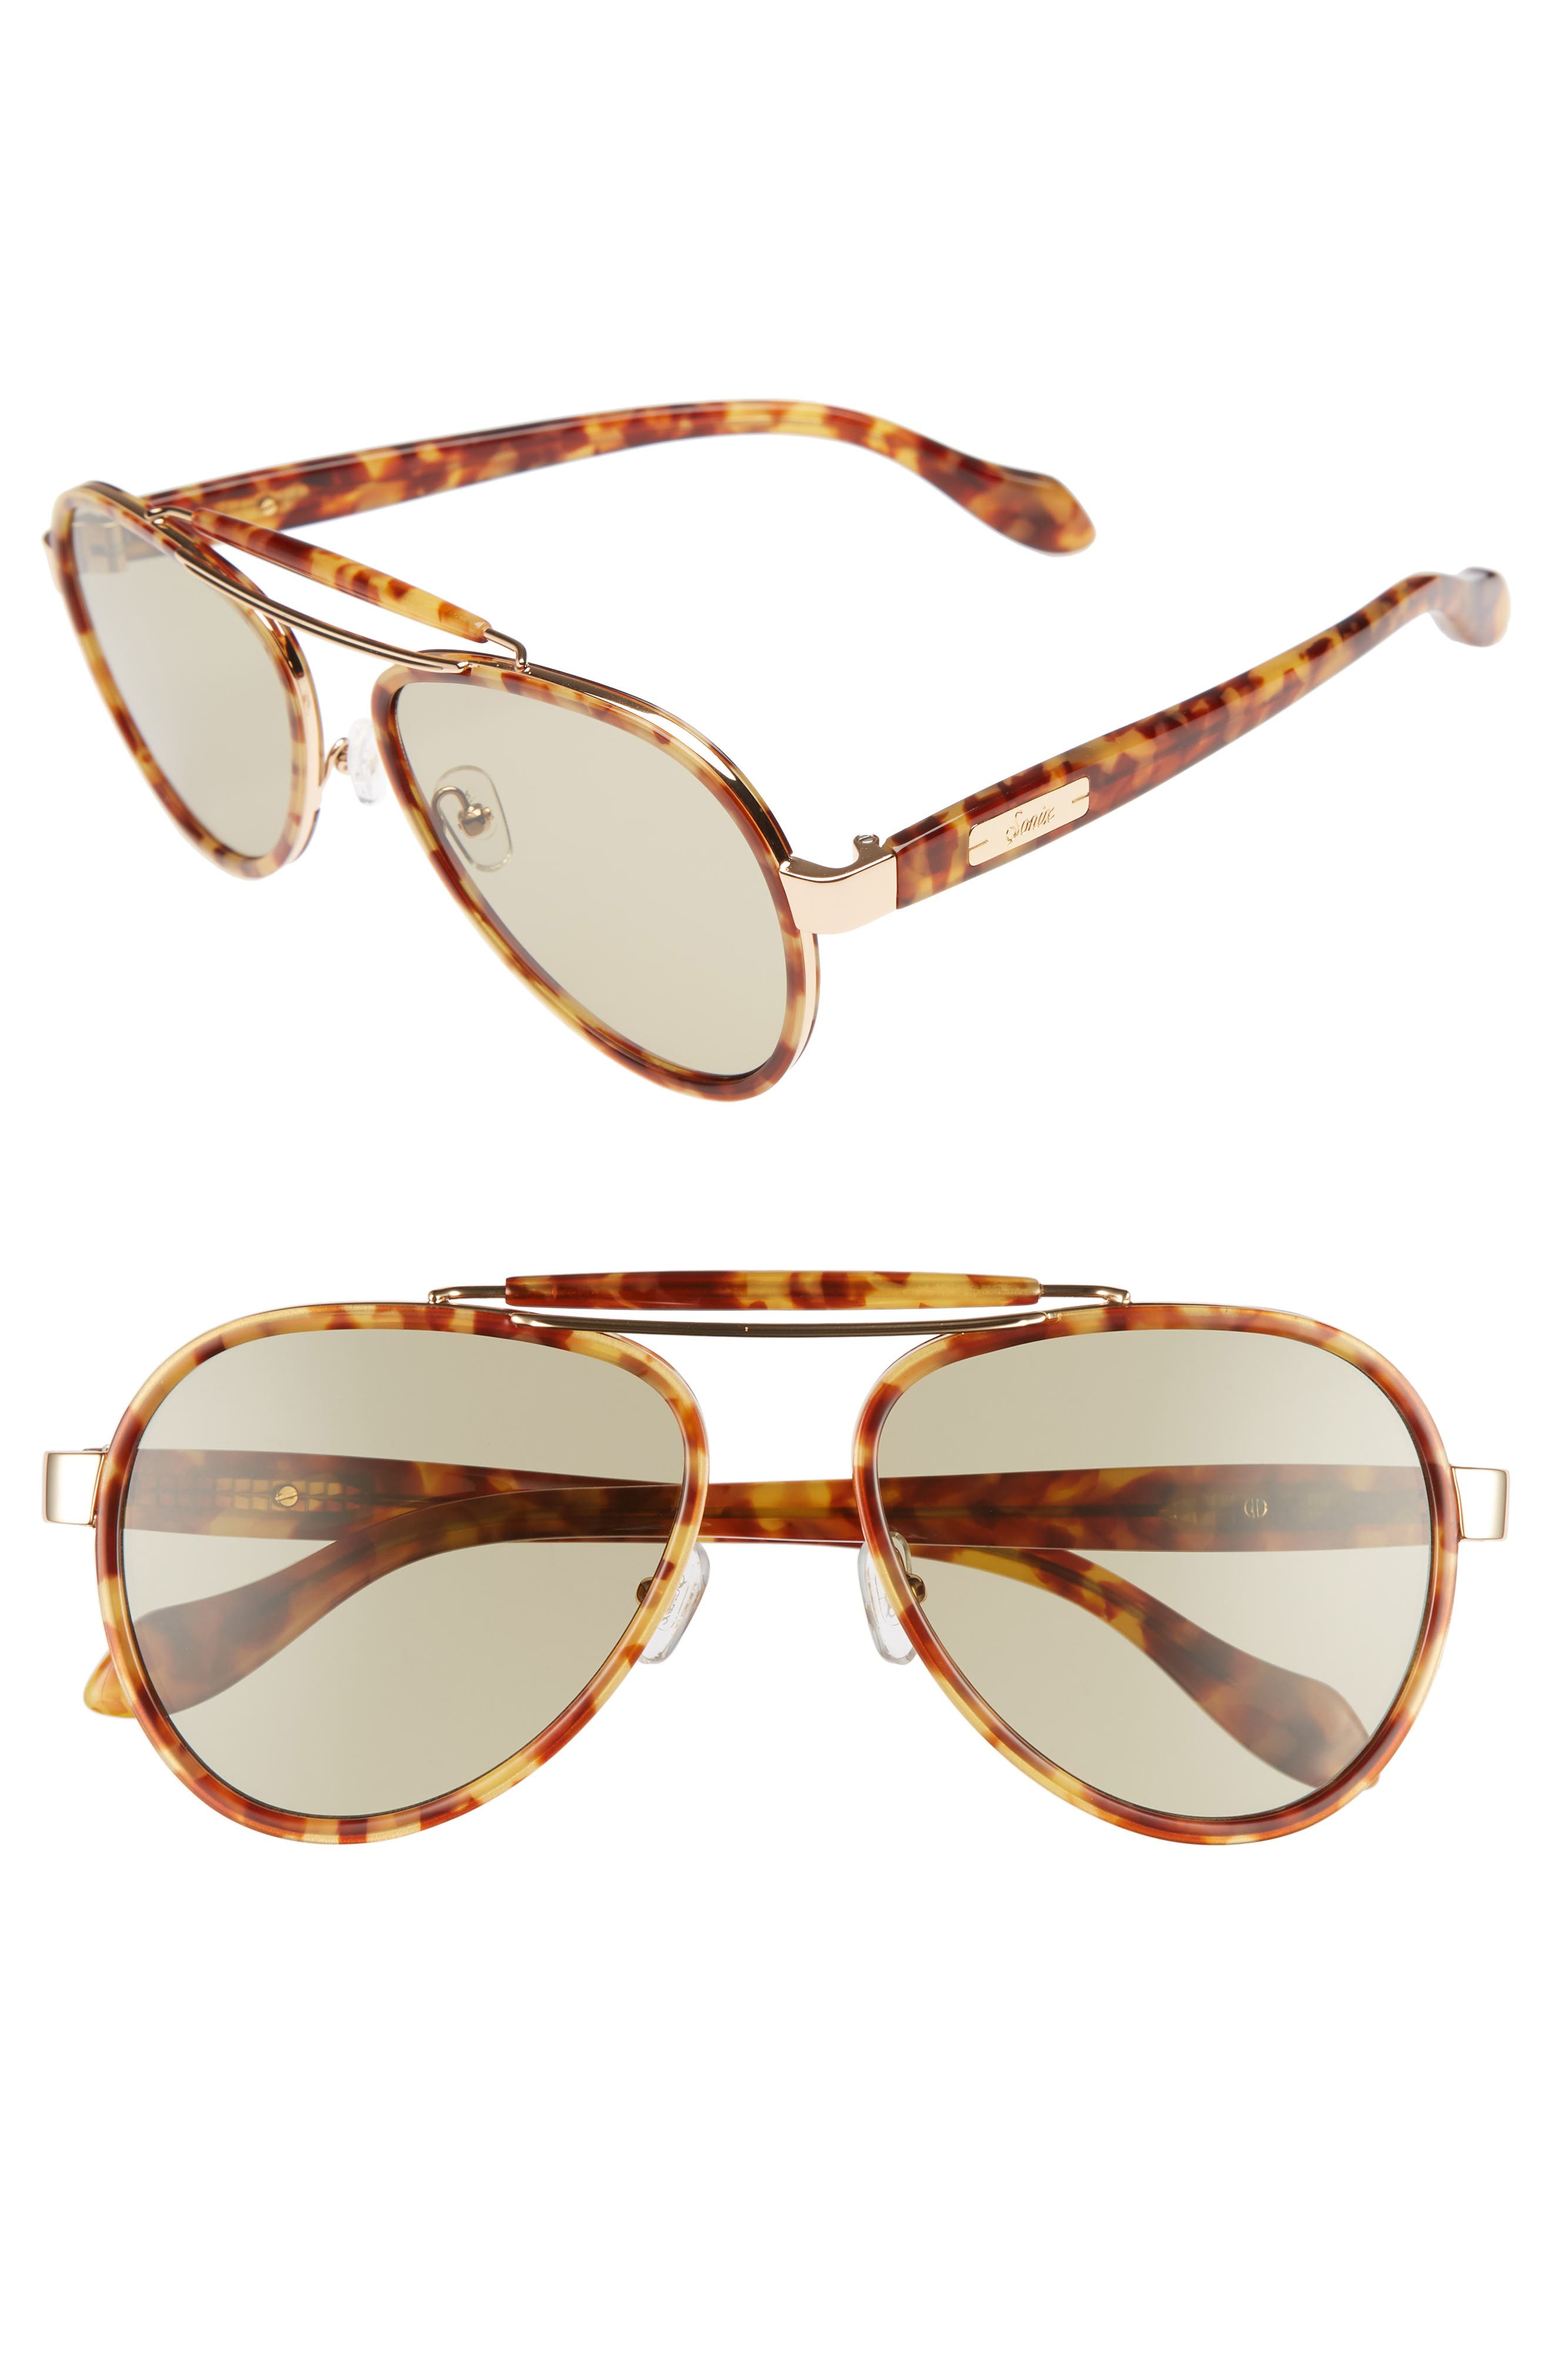 SONIX PABLO 58MM AVIATOR SUNGLASSES - BROWN TORTOISE/ SAGE SOLID